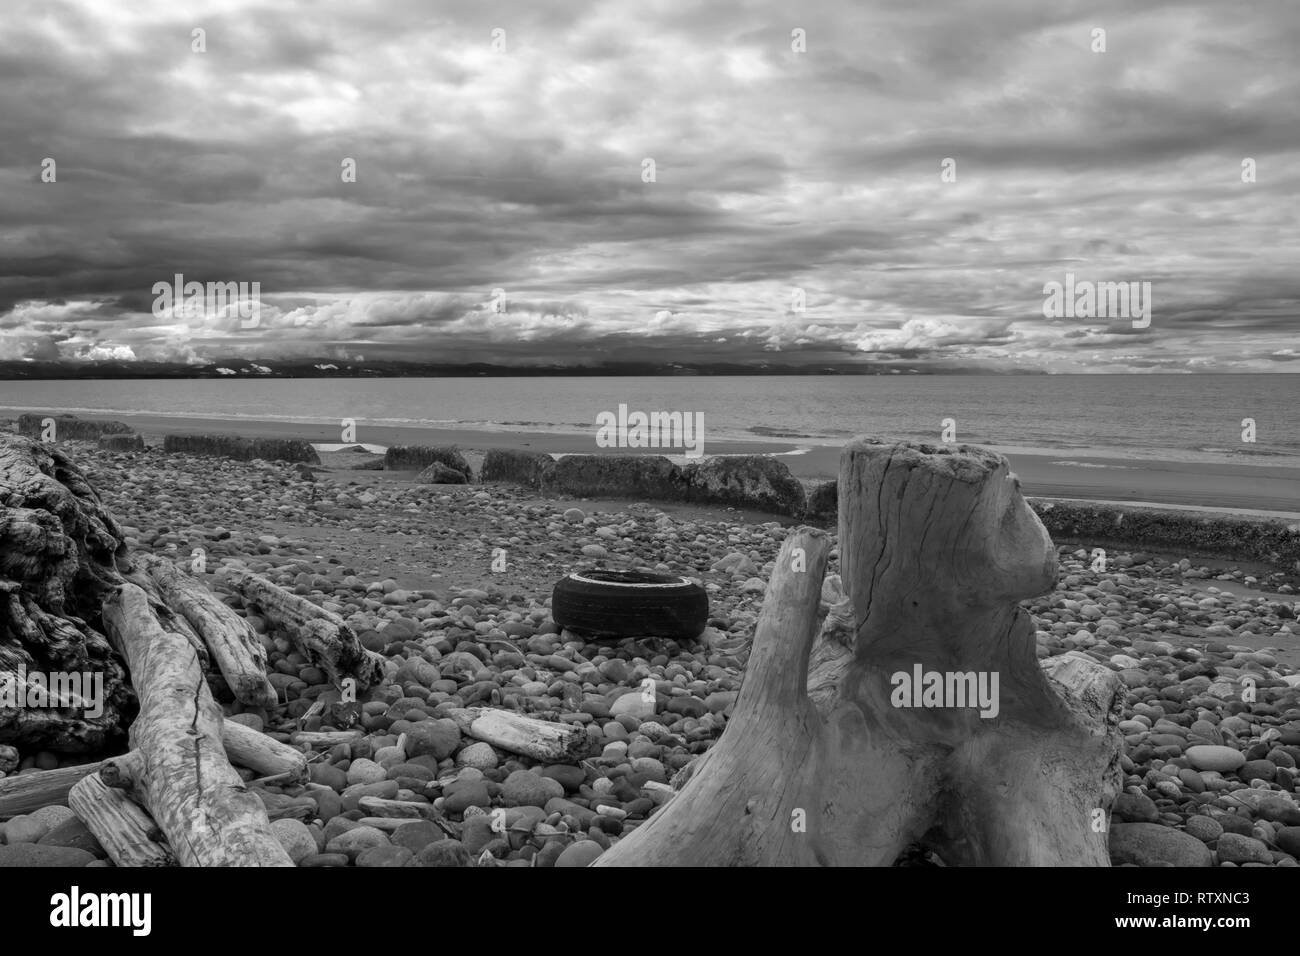 An Old Tire on West Beach, Whidbey Island - Stock Image